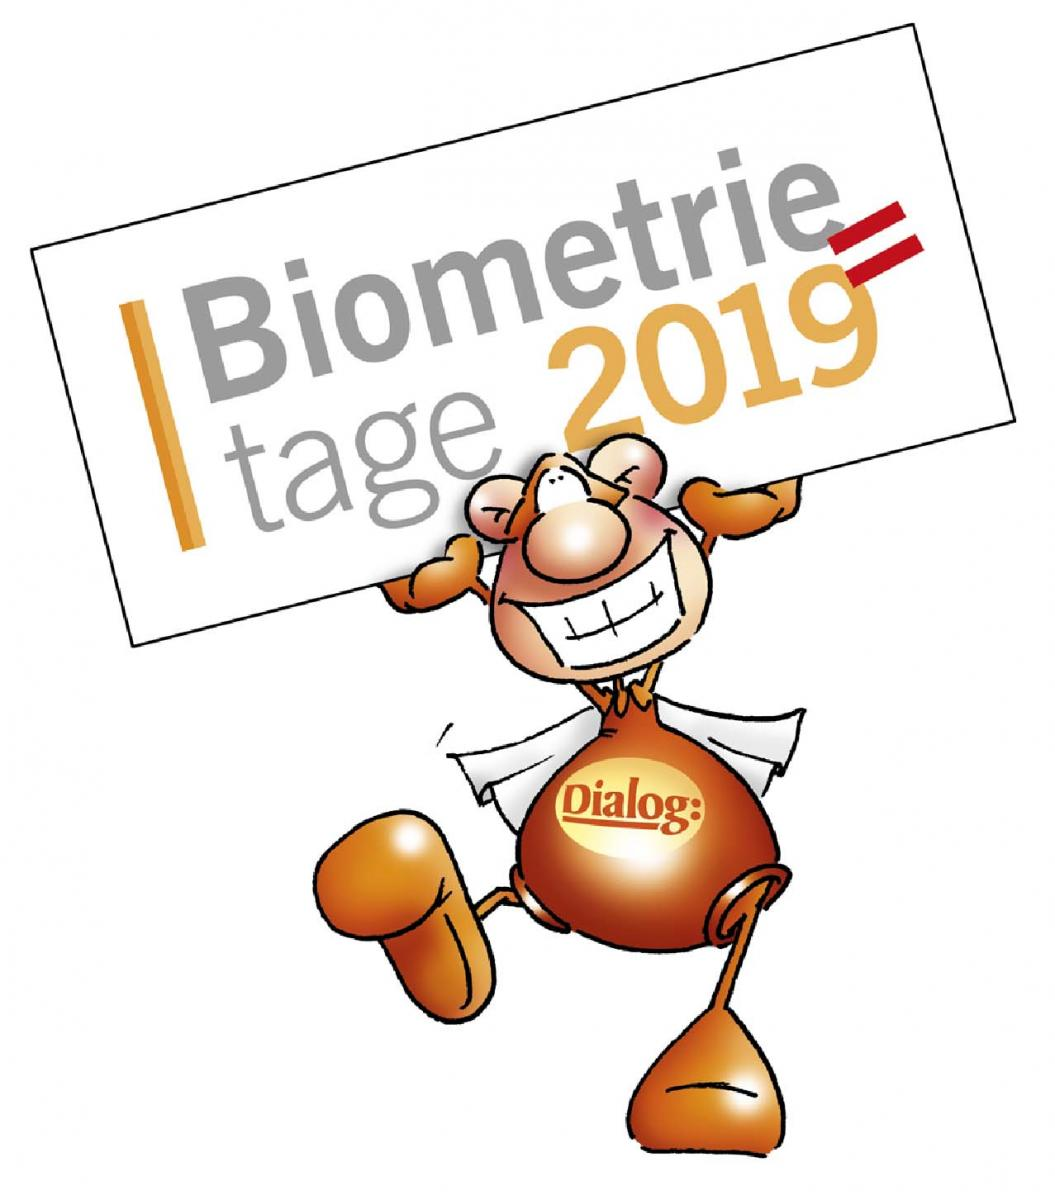 Biometrietage 2019